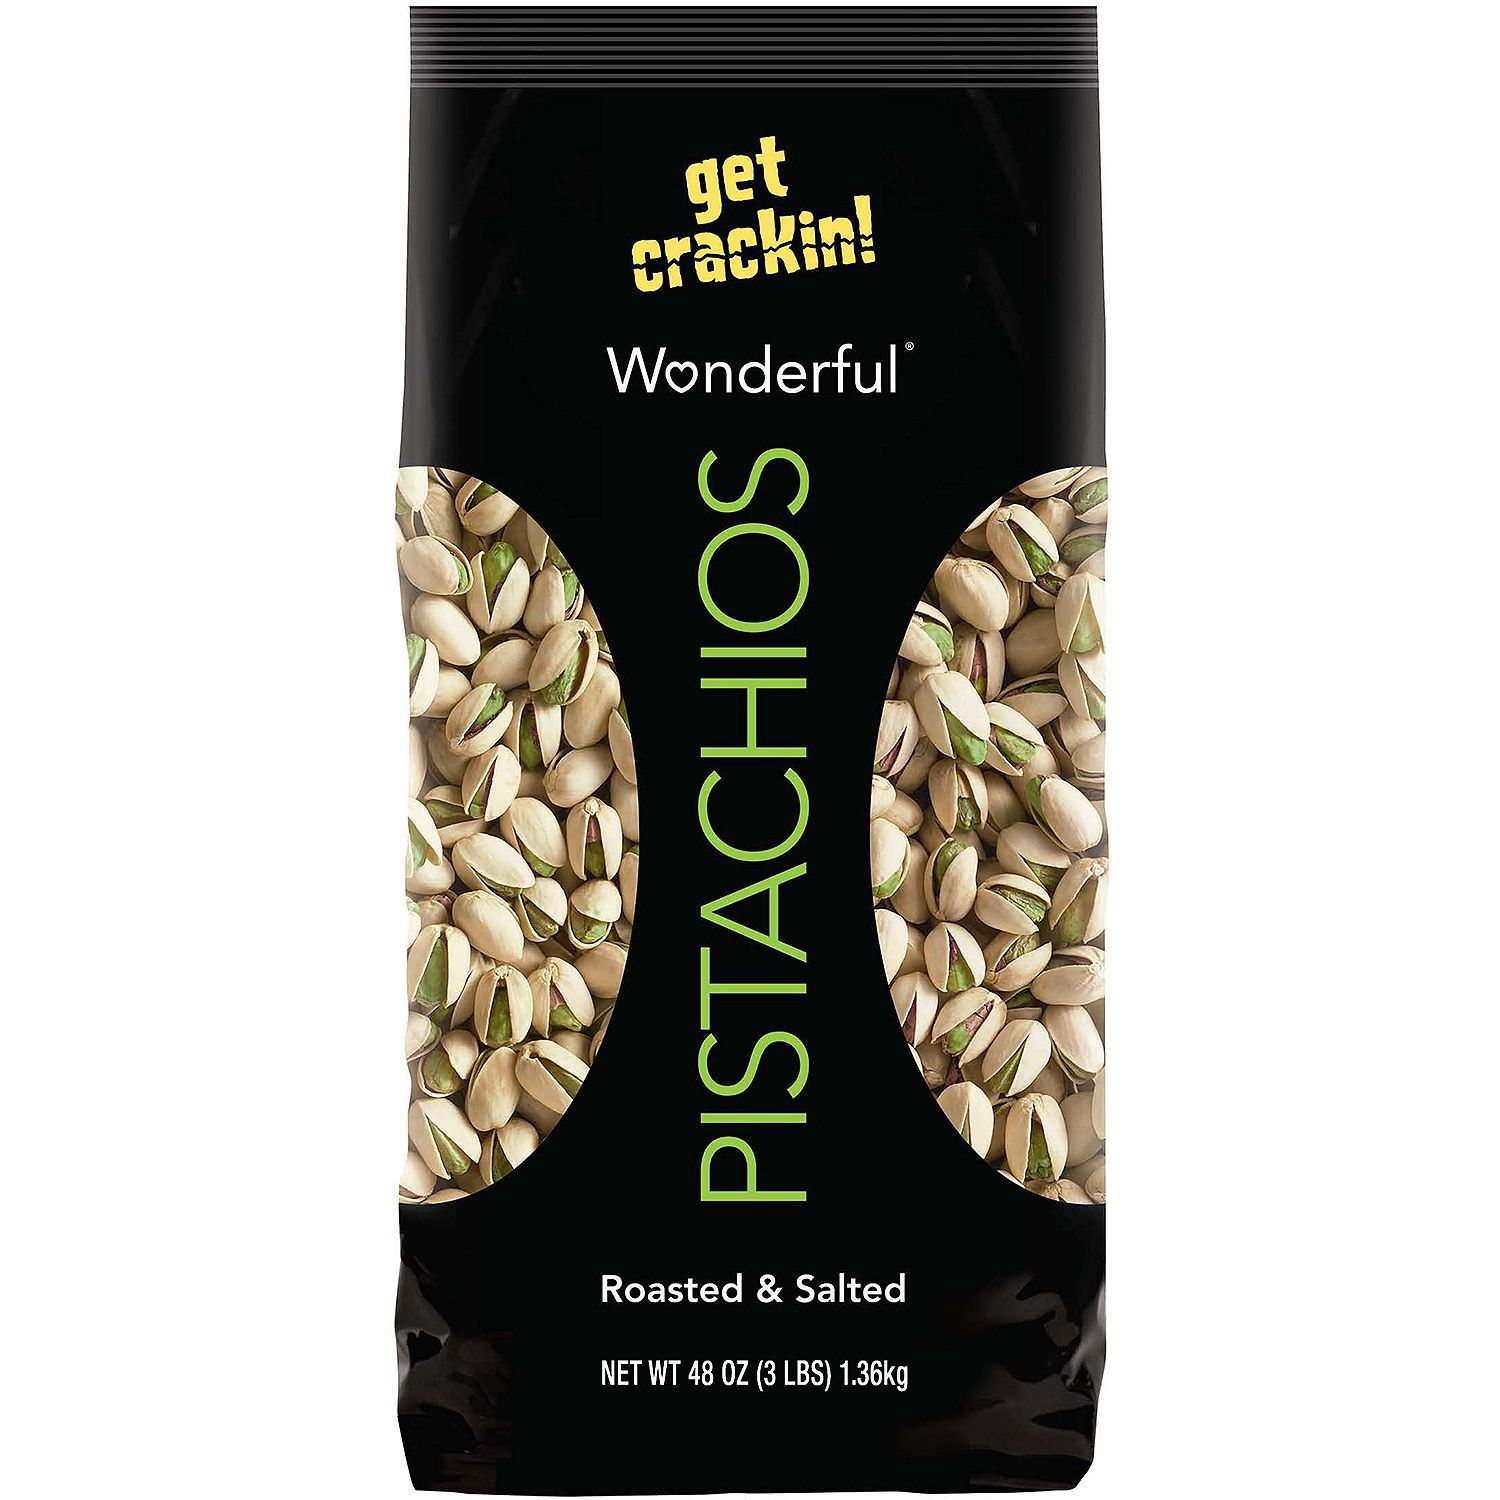 Wonderful Pistachios, Roasted & Salted, in Shell 48 oz | eBay